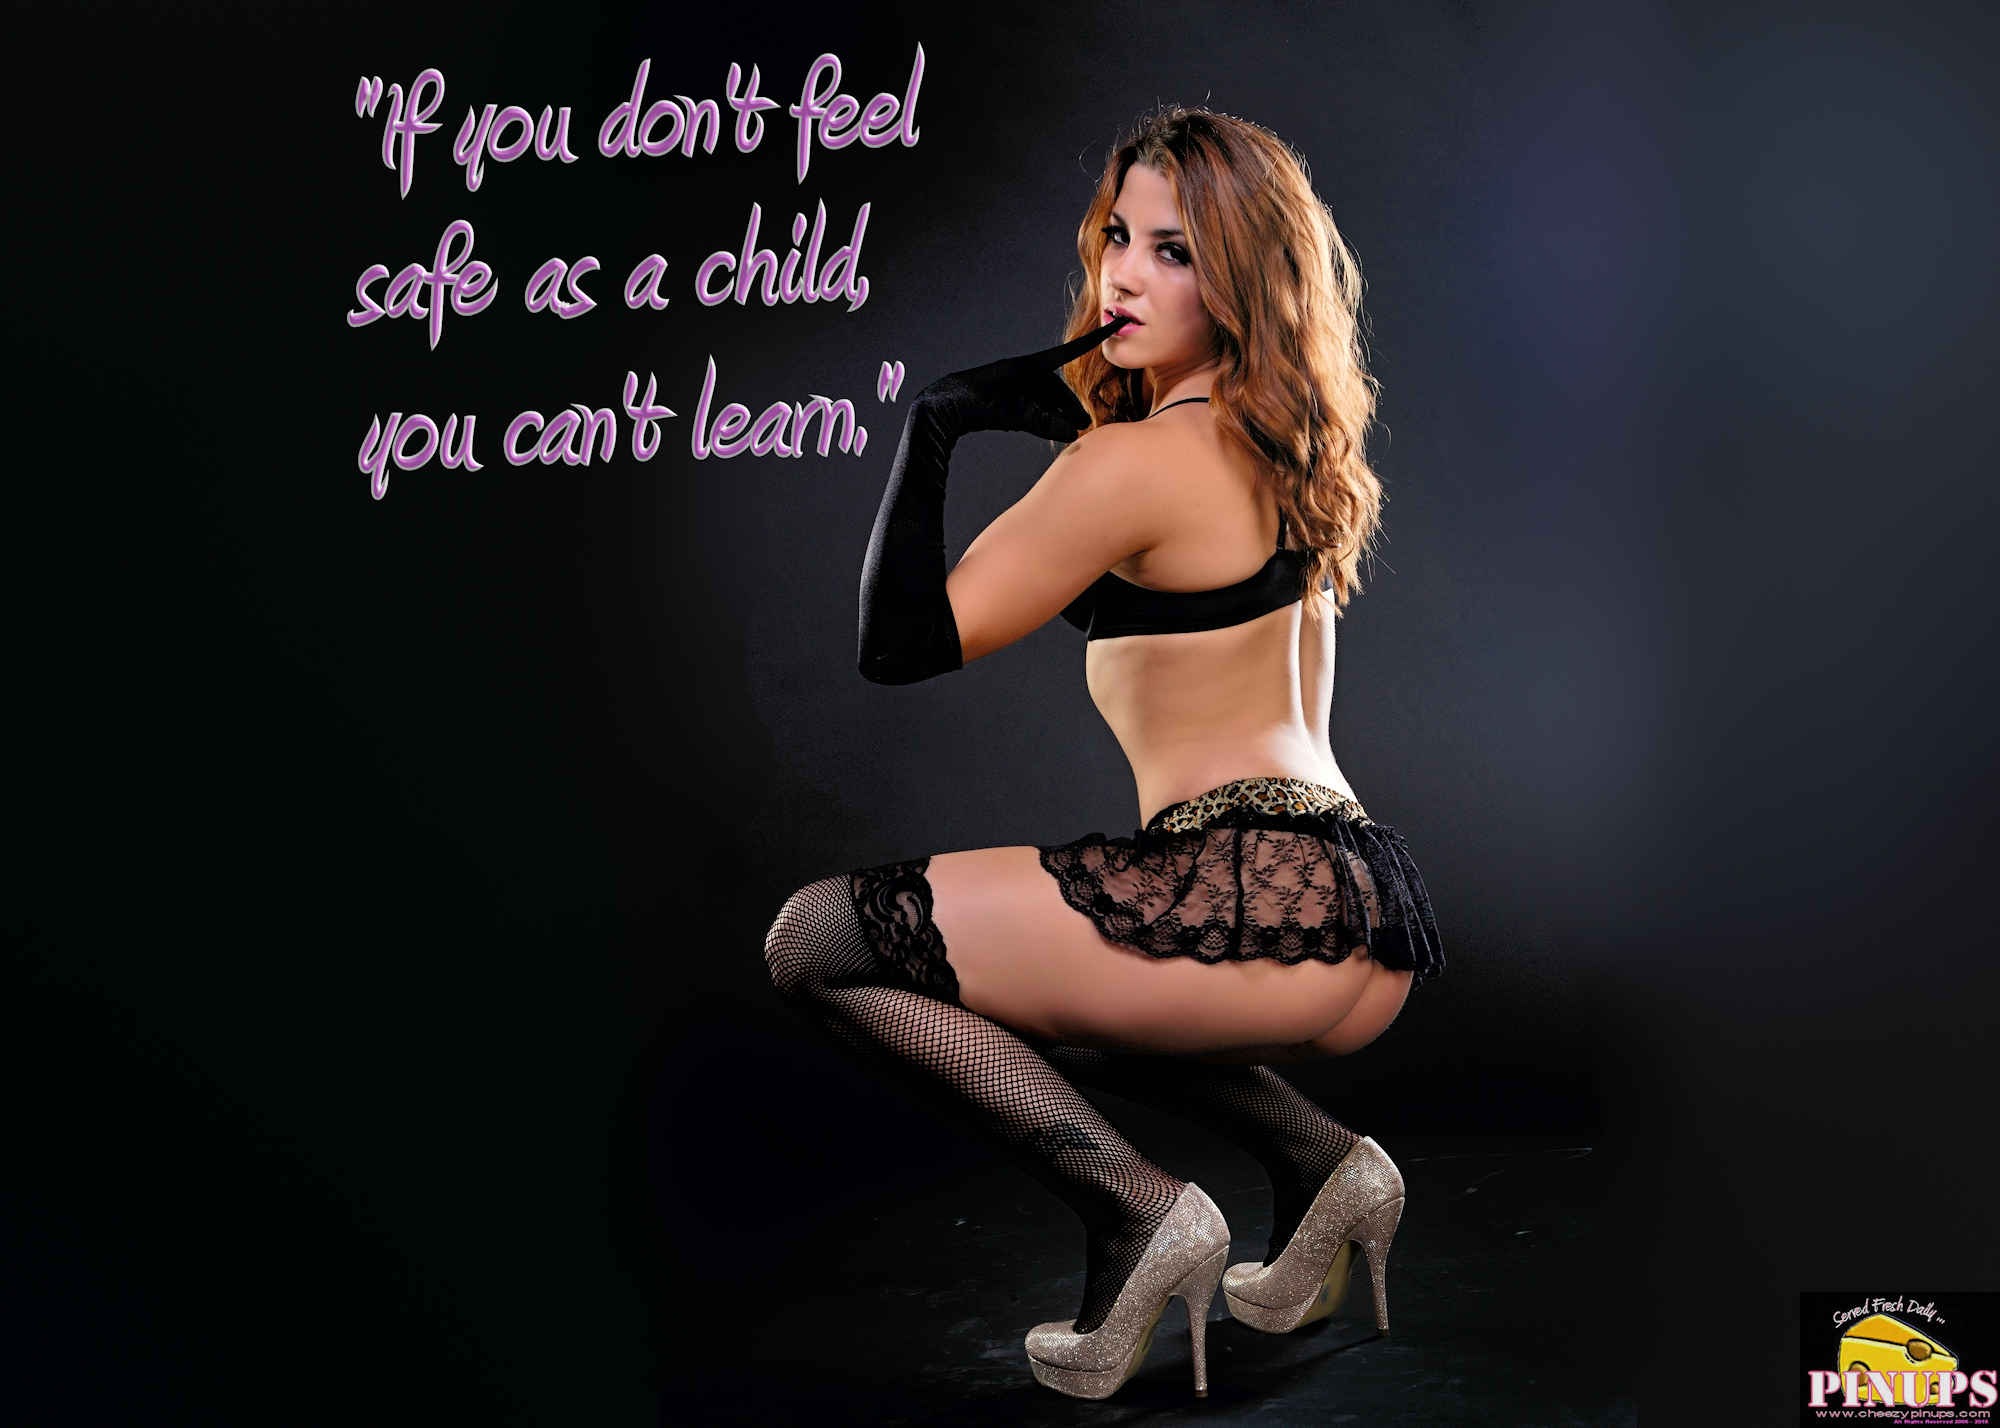 """Cheezy Pinup - March 28, 2018   """"If you don't feel safe as a child, you can't learn."""" - Lady Gaga Model: Amanda"""